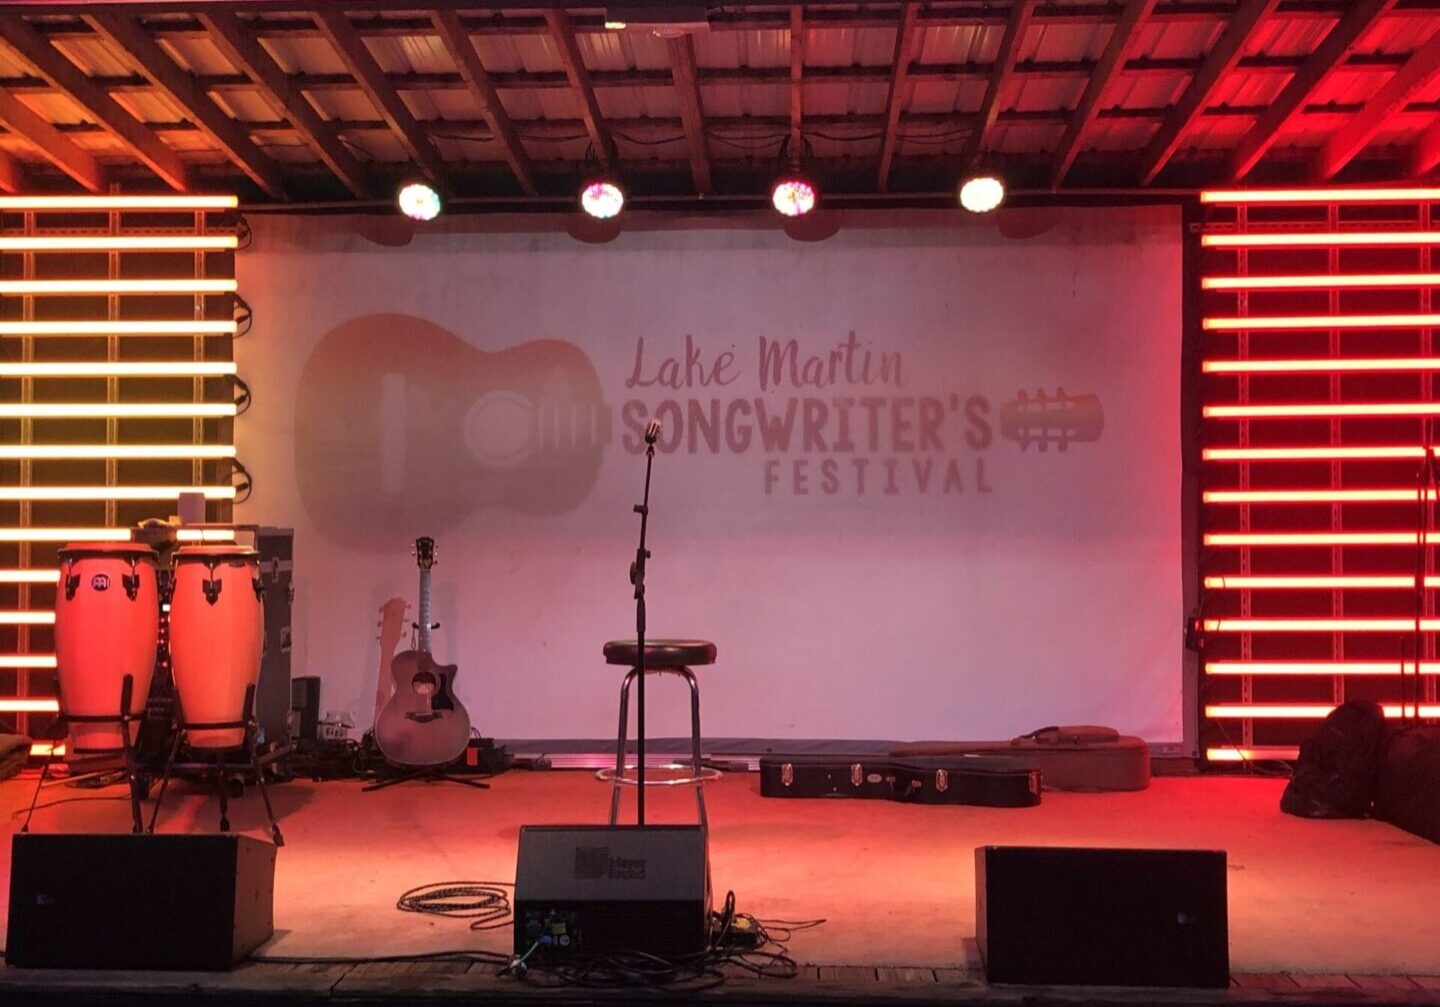 Lake Martin Songwriters Schedule